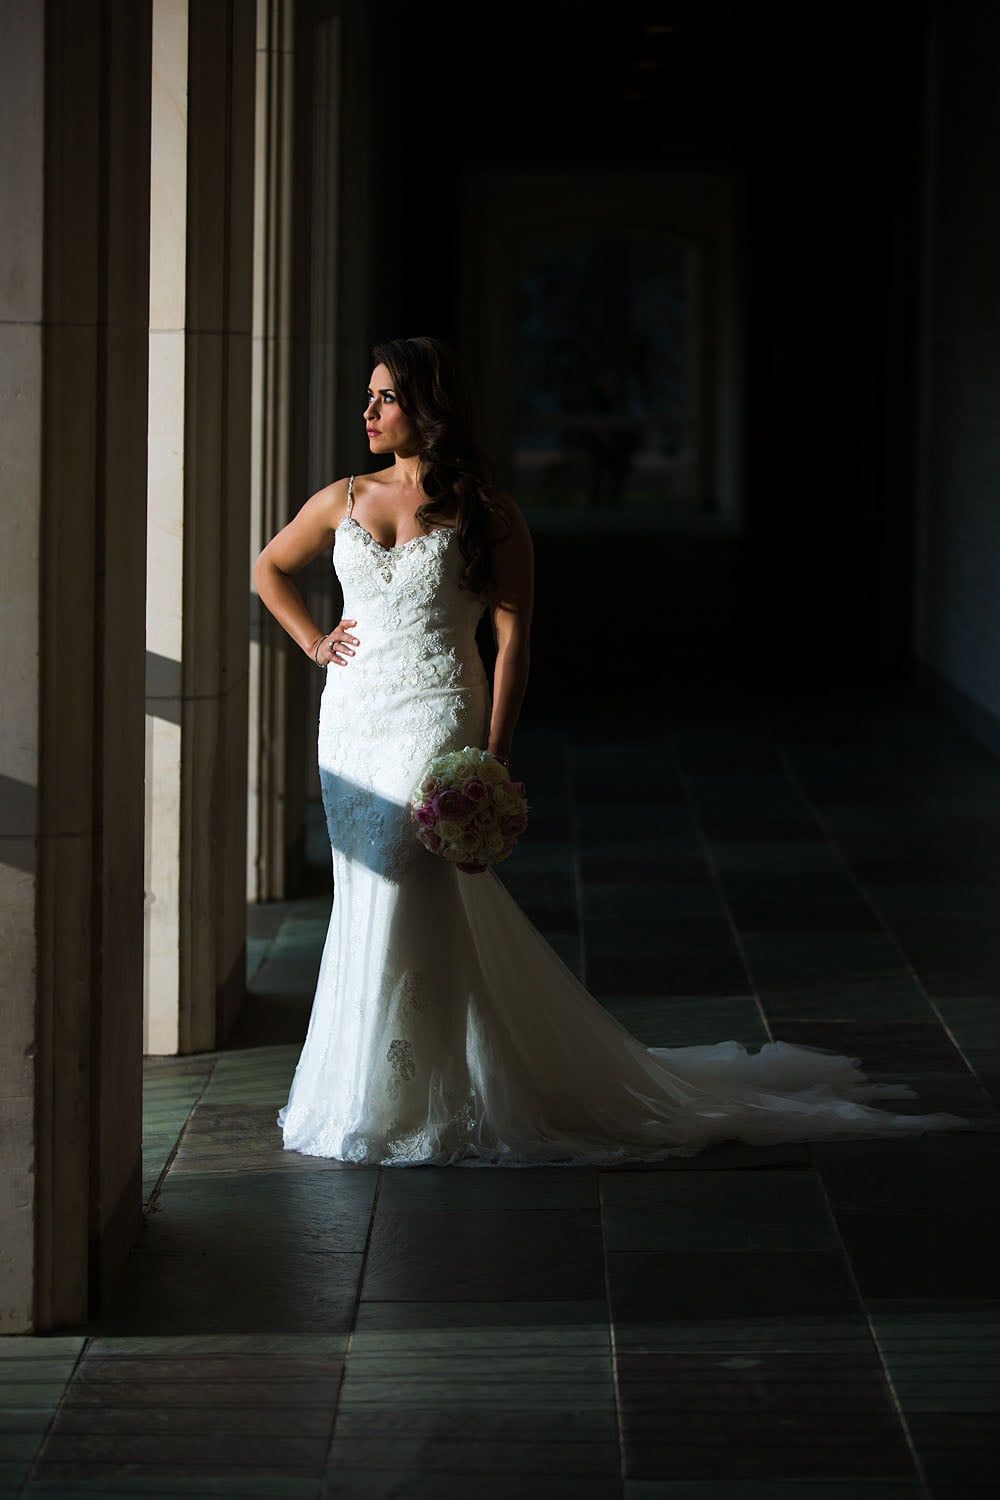 austin-wedding-bridal-28.jpg